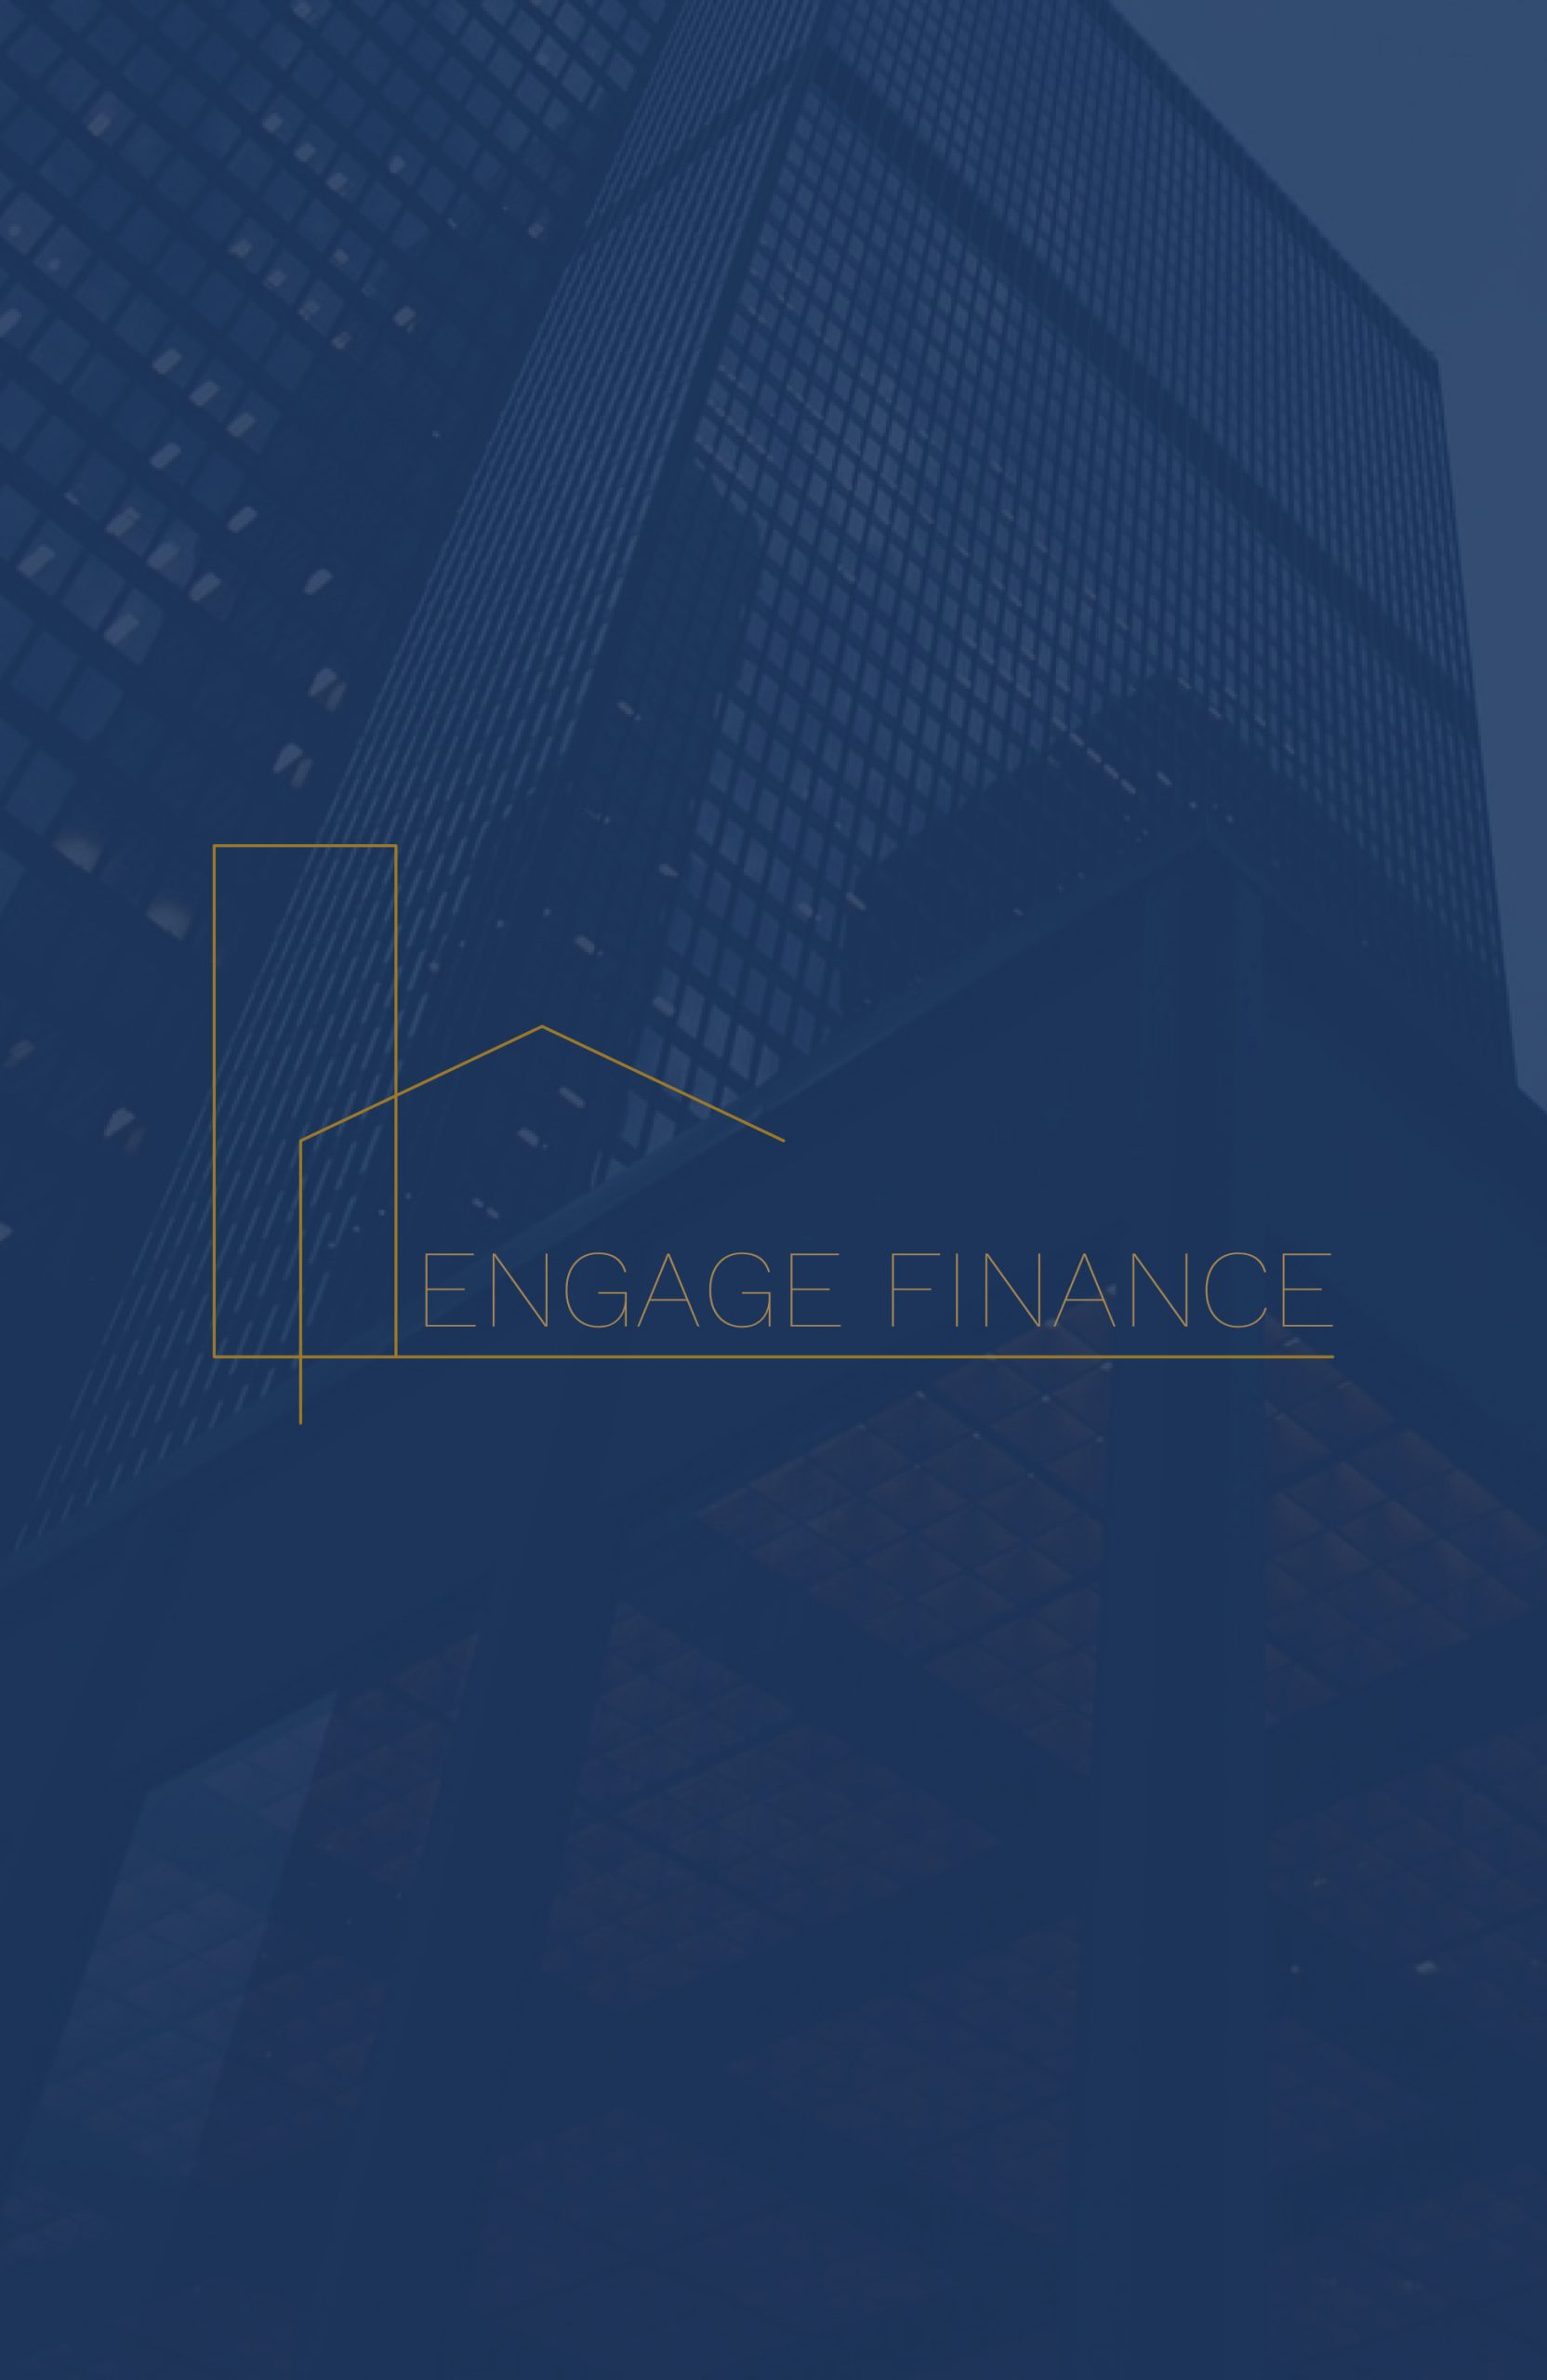 Engage Finance Mobile